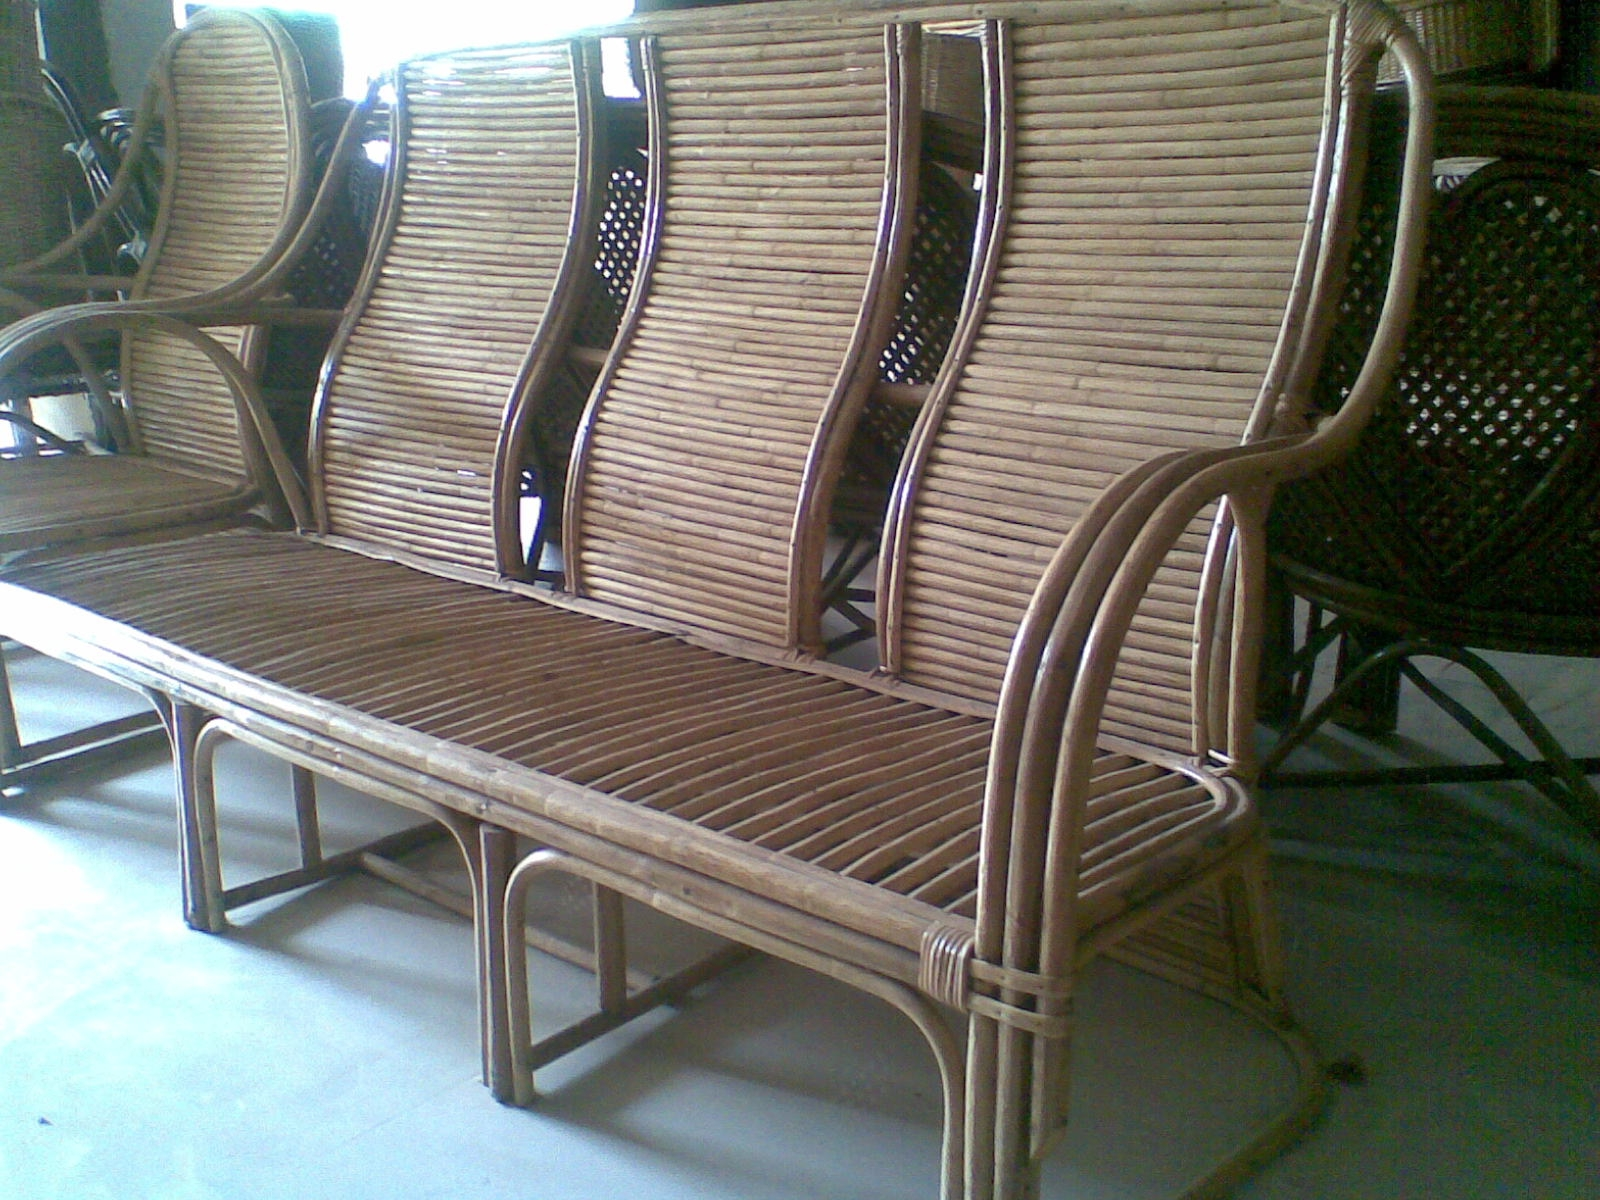 swing chair olx islamabad american diner table and chairs cane sofa set online india rattan furnitures best